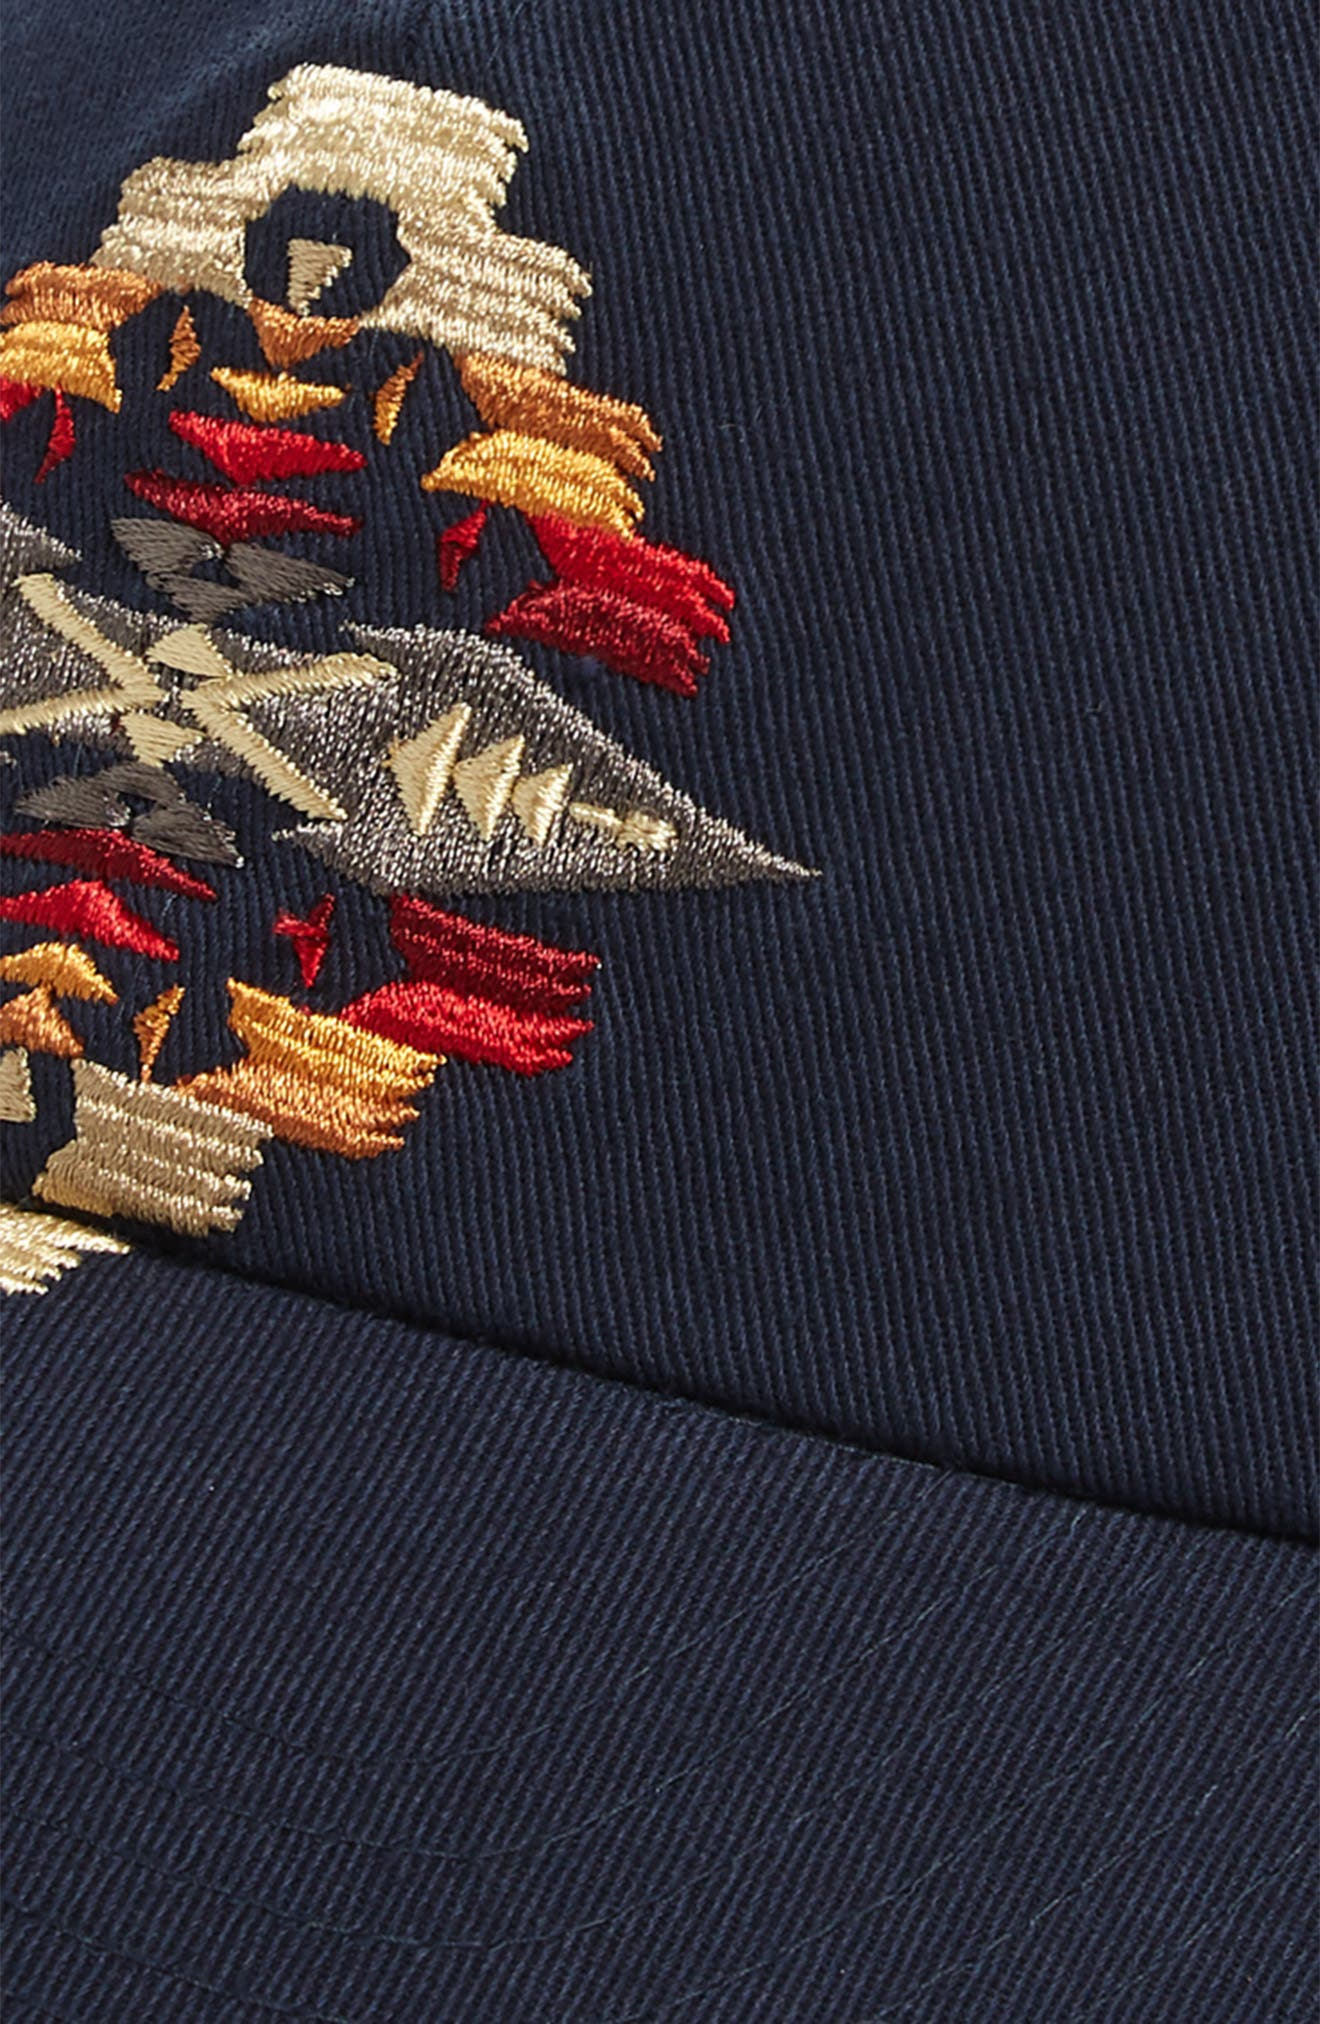 Tucson Embroidered Cap,                             Alternate thumbnail 3, color,                             NAVY